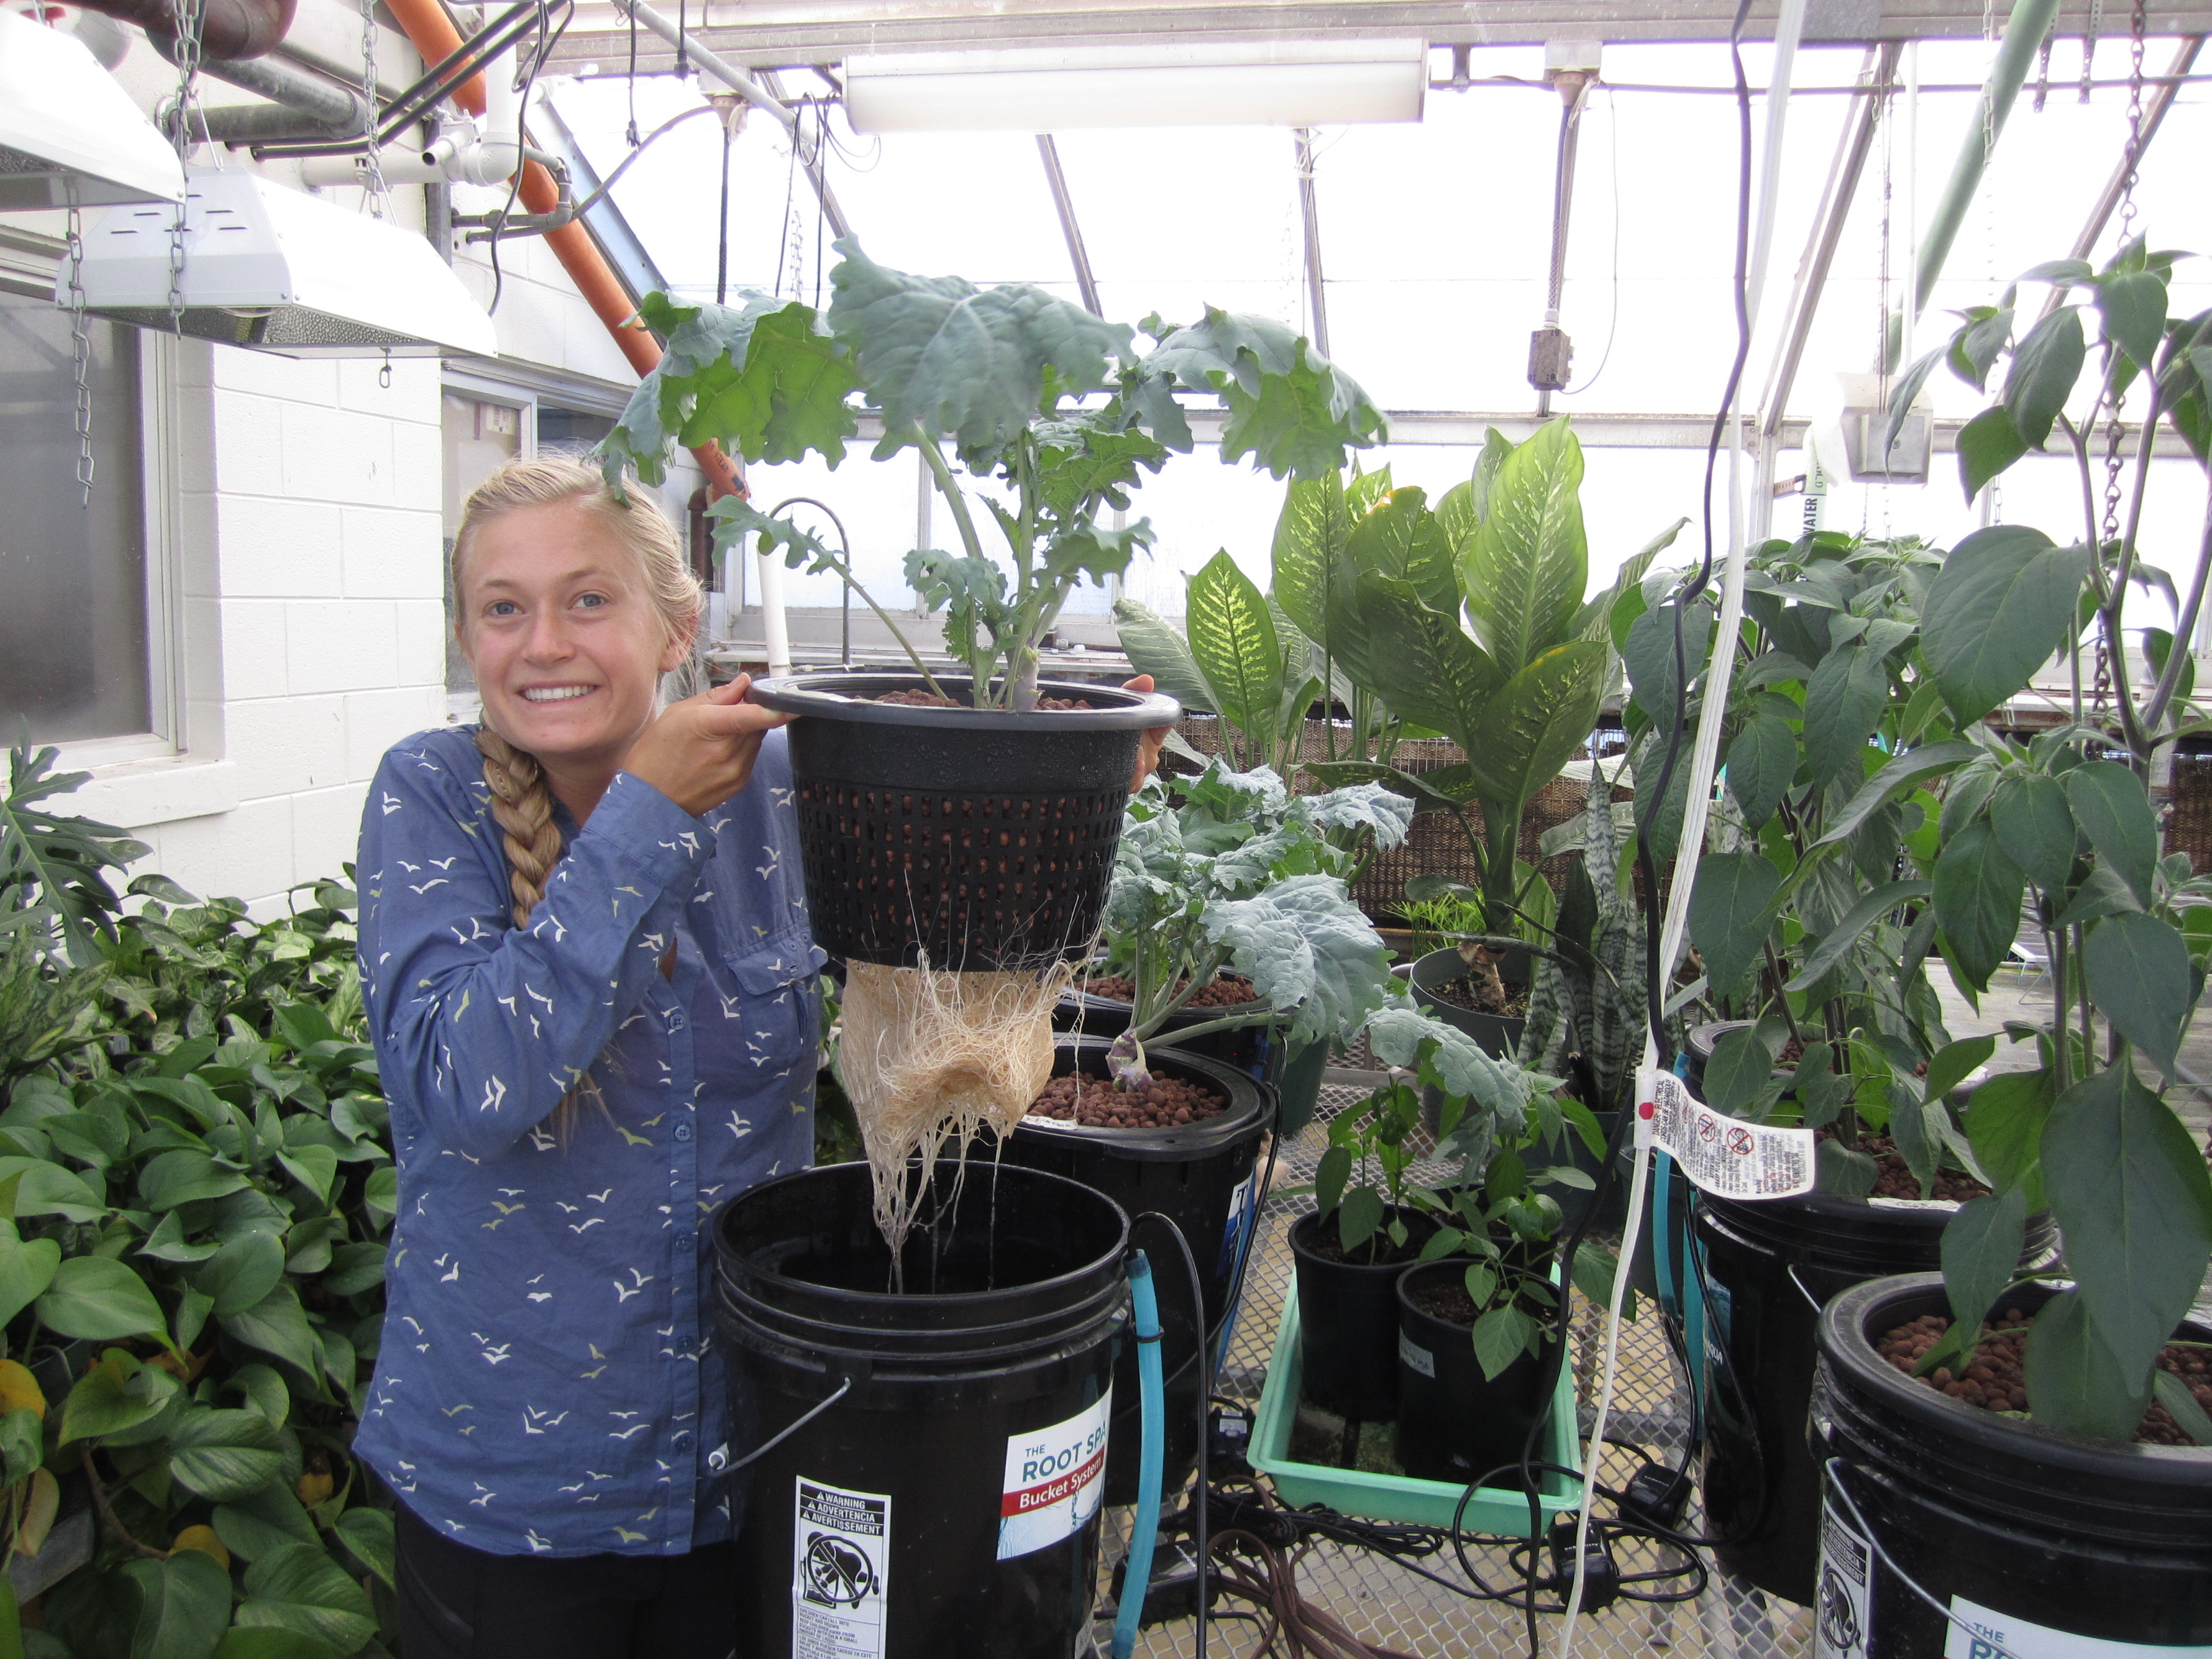 U student Georgie Corkery with plants growing using hydroponics. She is holding a kale plant.